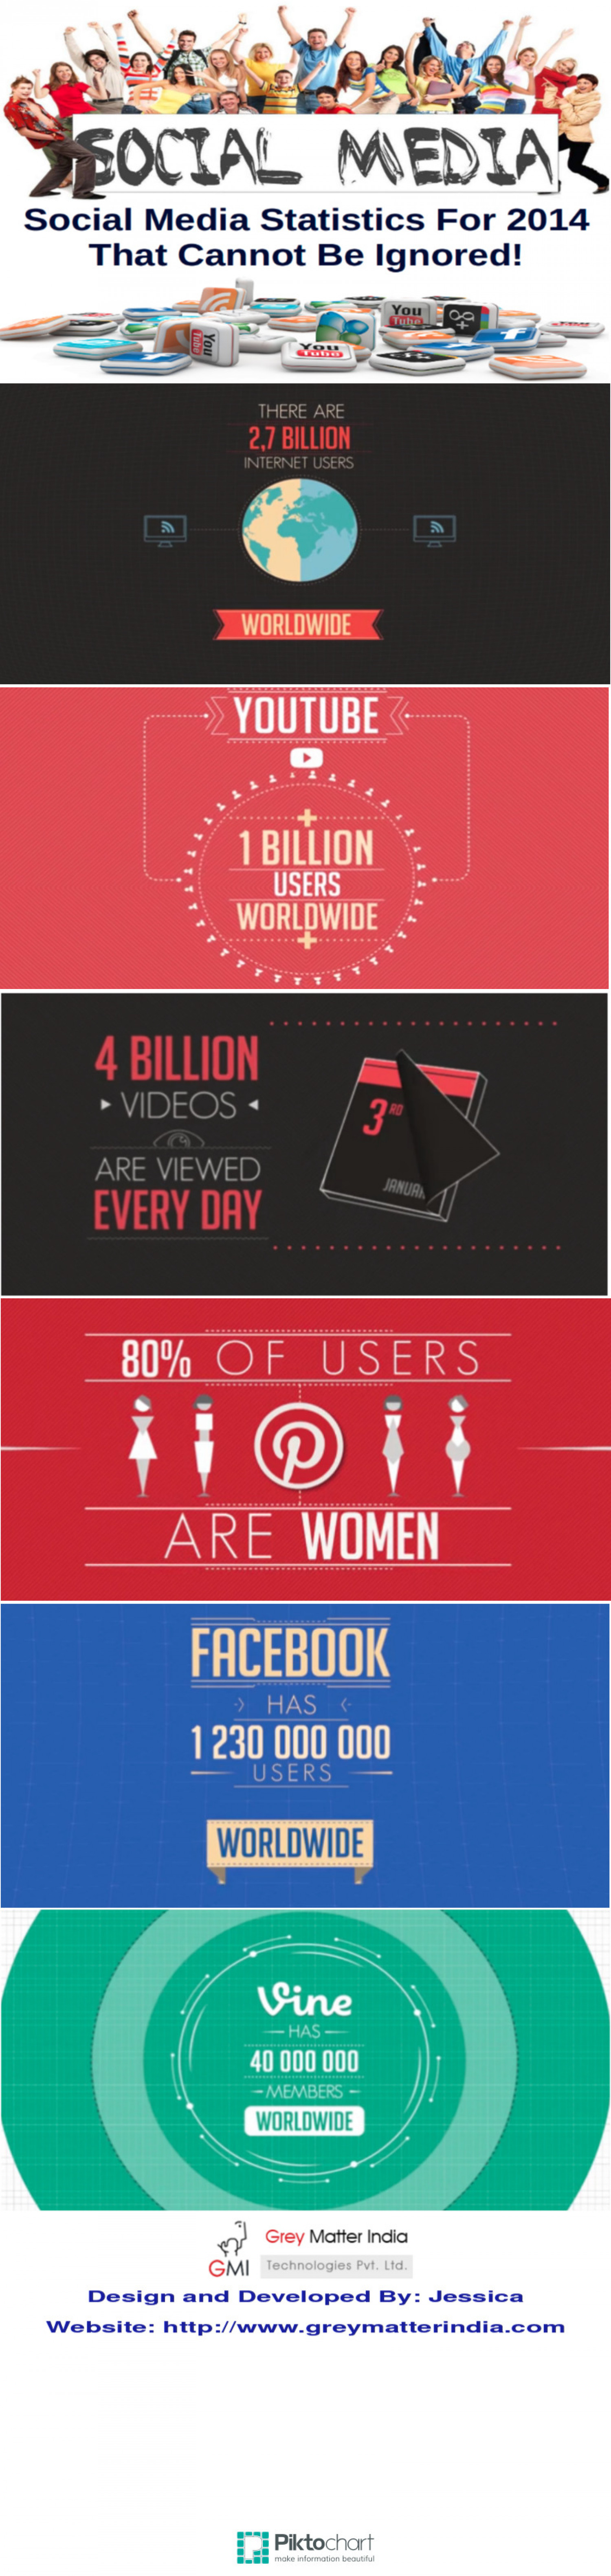 Social Media statistics for 2014 that cannot be ignored! Infographic